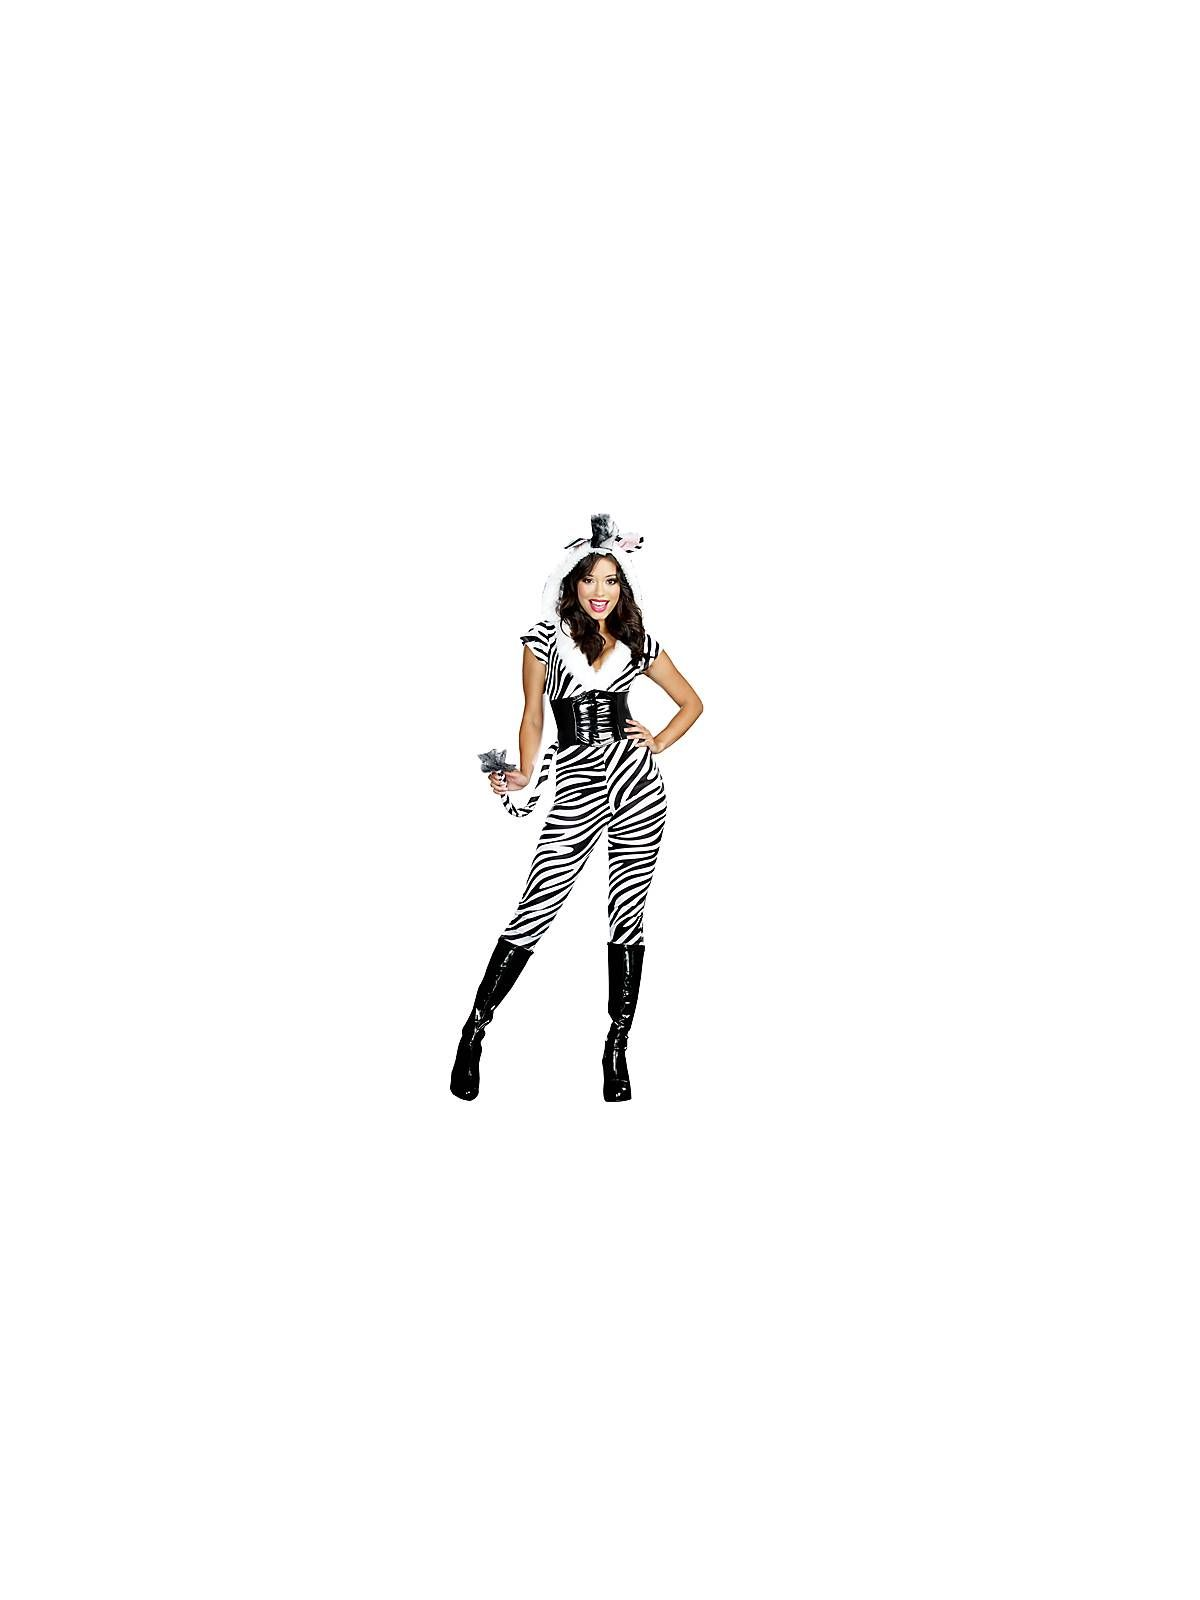 Sexy Zebralicious Zebra Costume | Wholesale Animal Costumes for Adults  sc 1 st  Pinterest & Sexy Zebralicious Zebra Costume | Wholesale Animal Costumes for ...